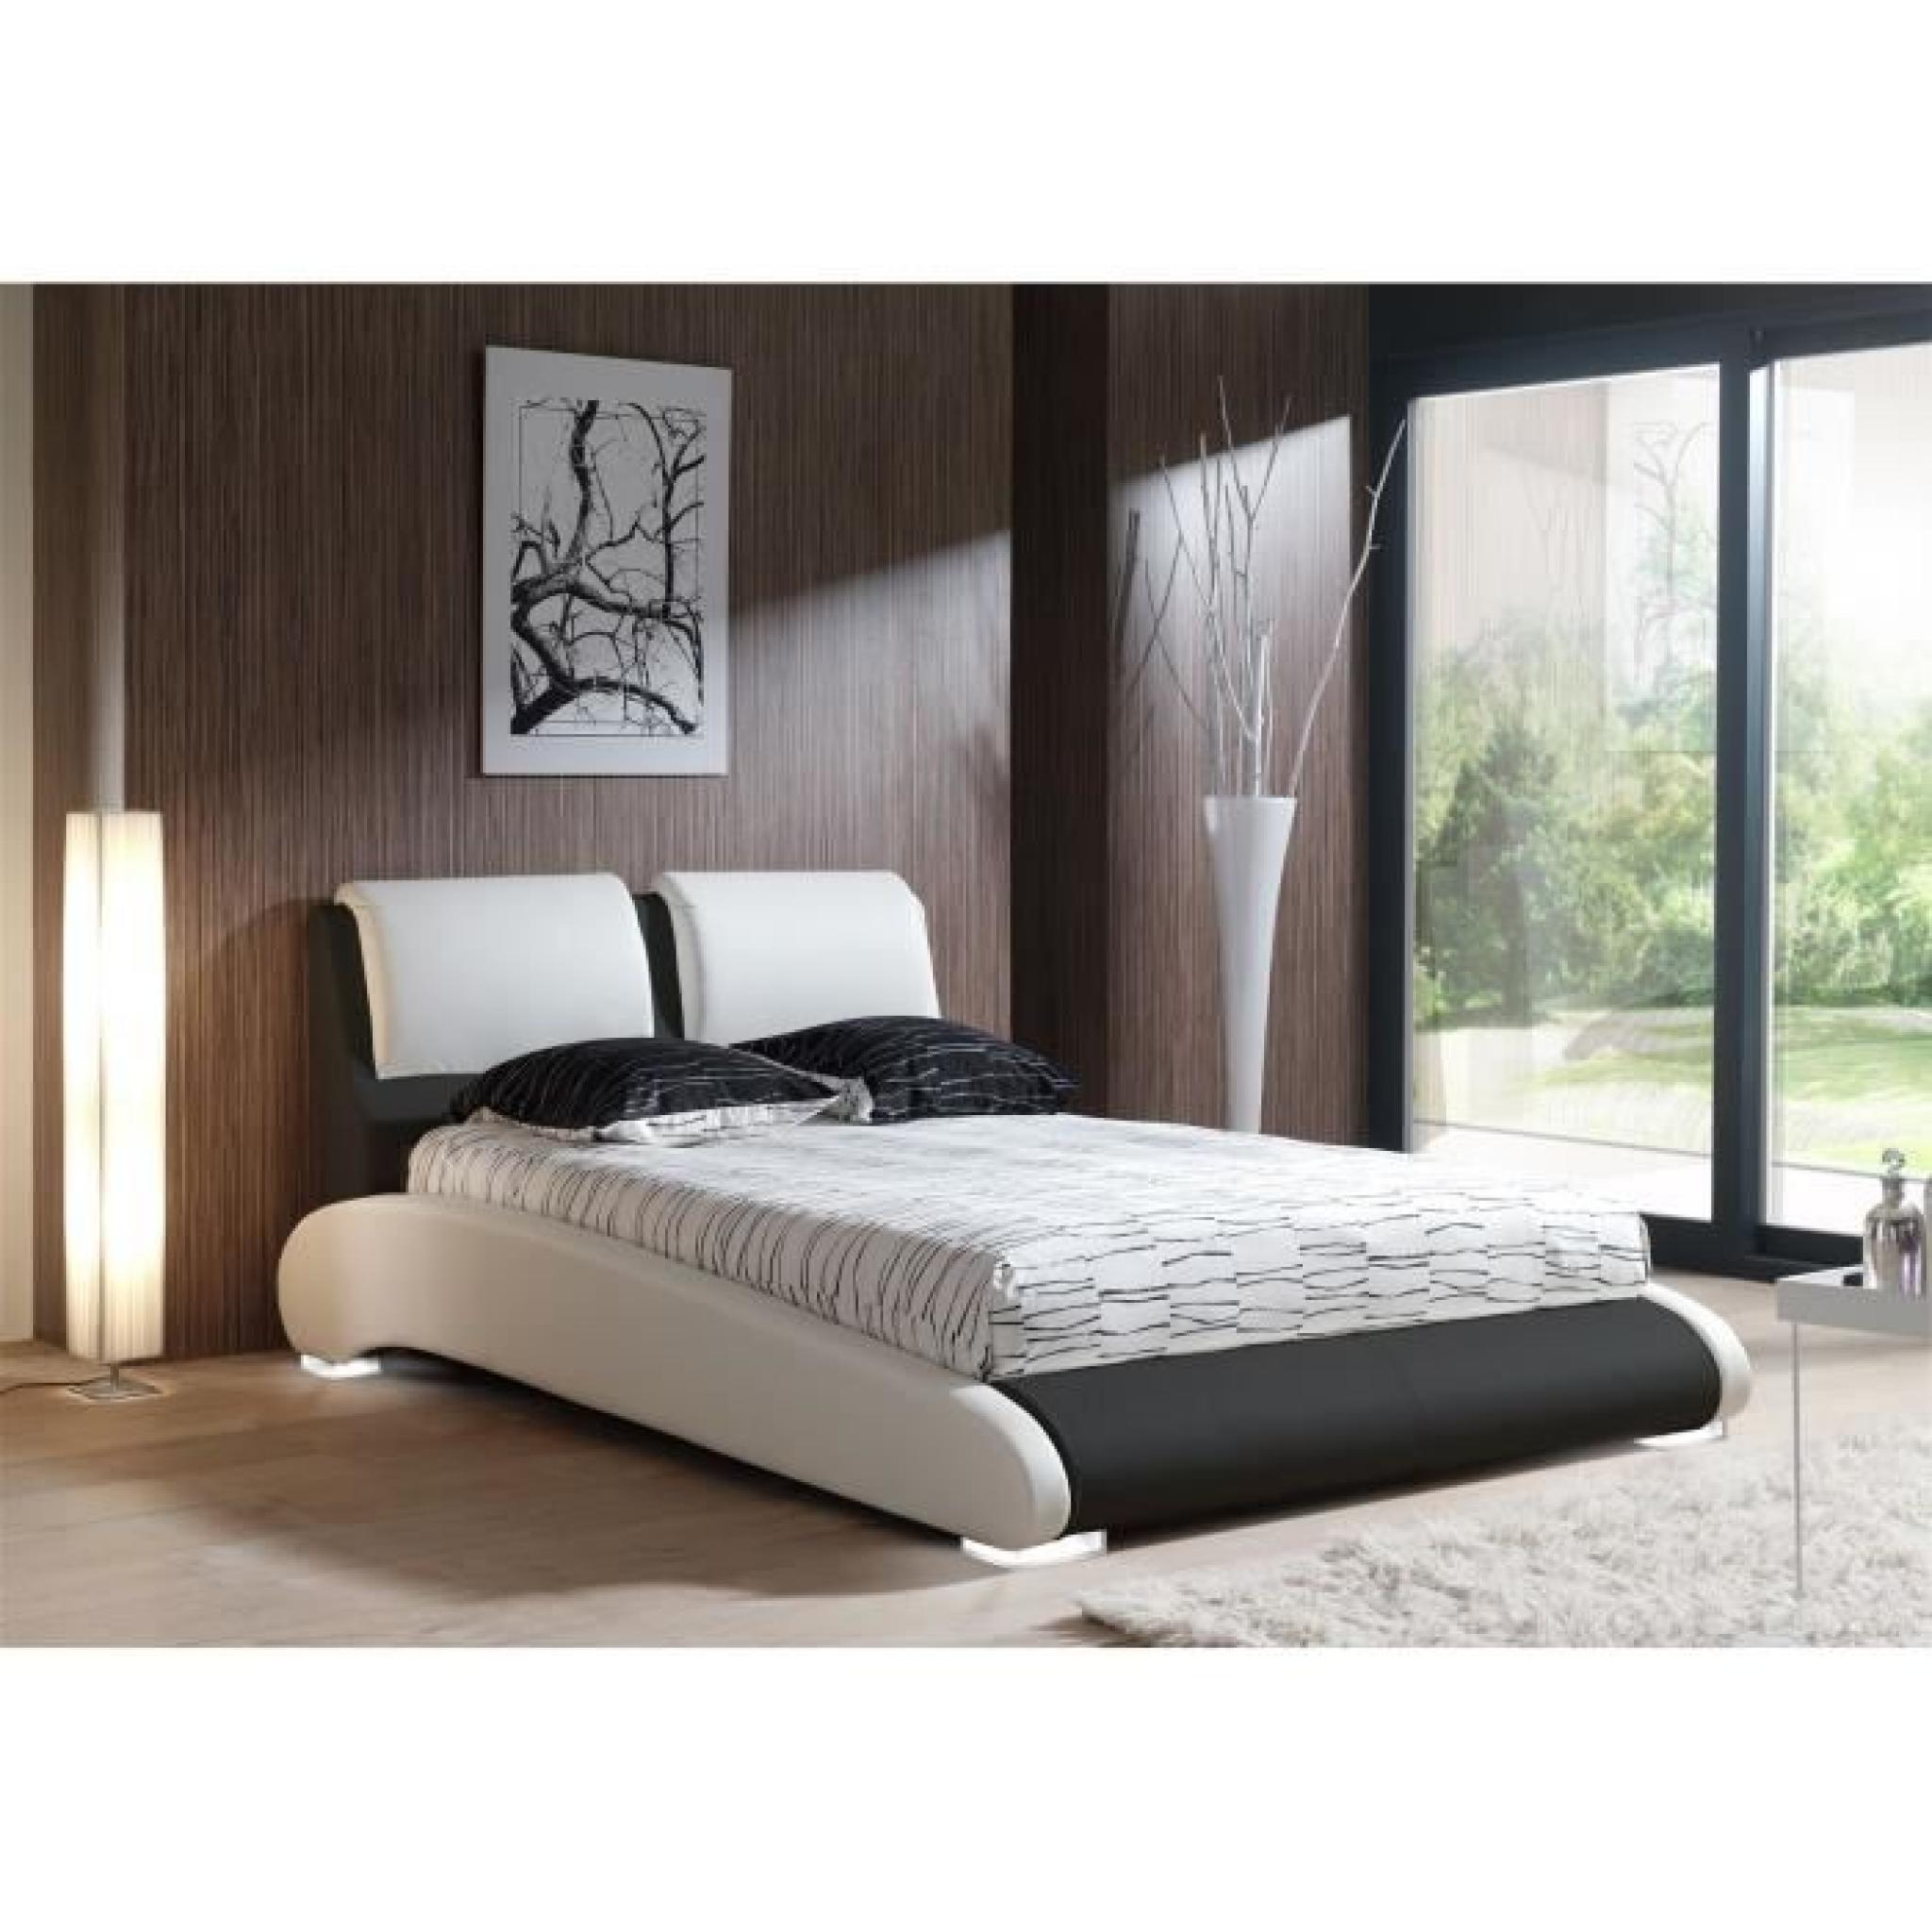 maxi lit adulte sommier 160x200 blanc noir pieds led achat vente lit pas cher couleur et. Black Bedroom Furniture Sets. Home Design Ideas